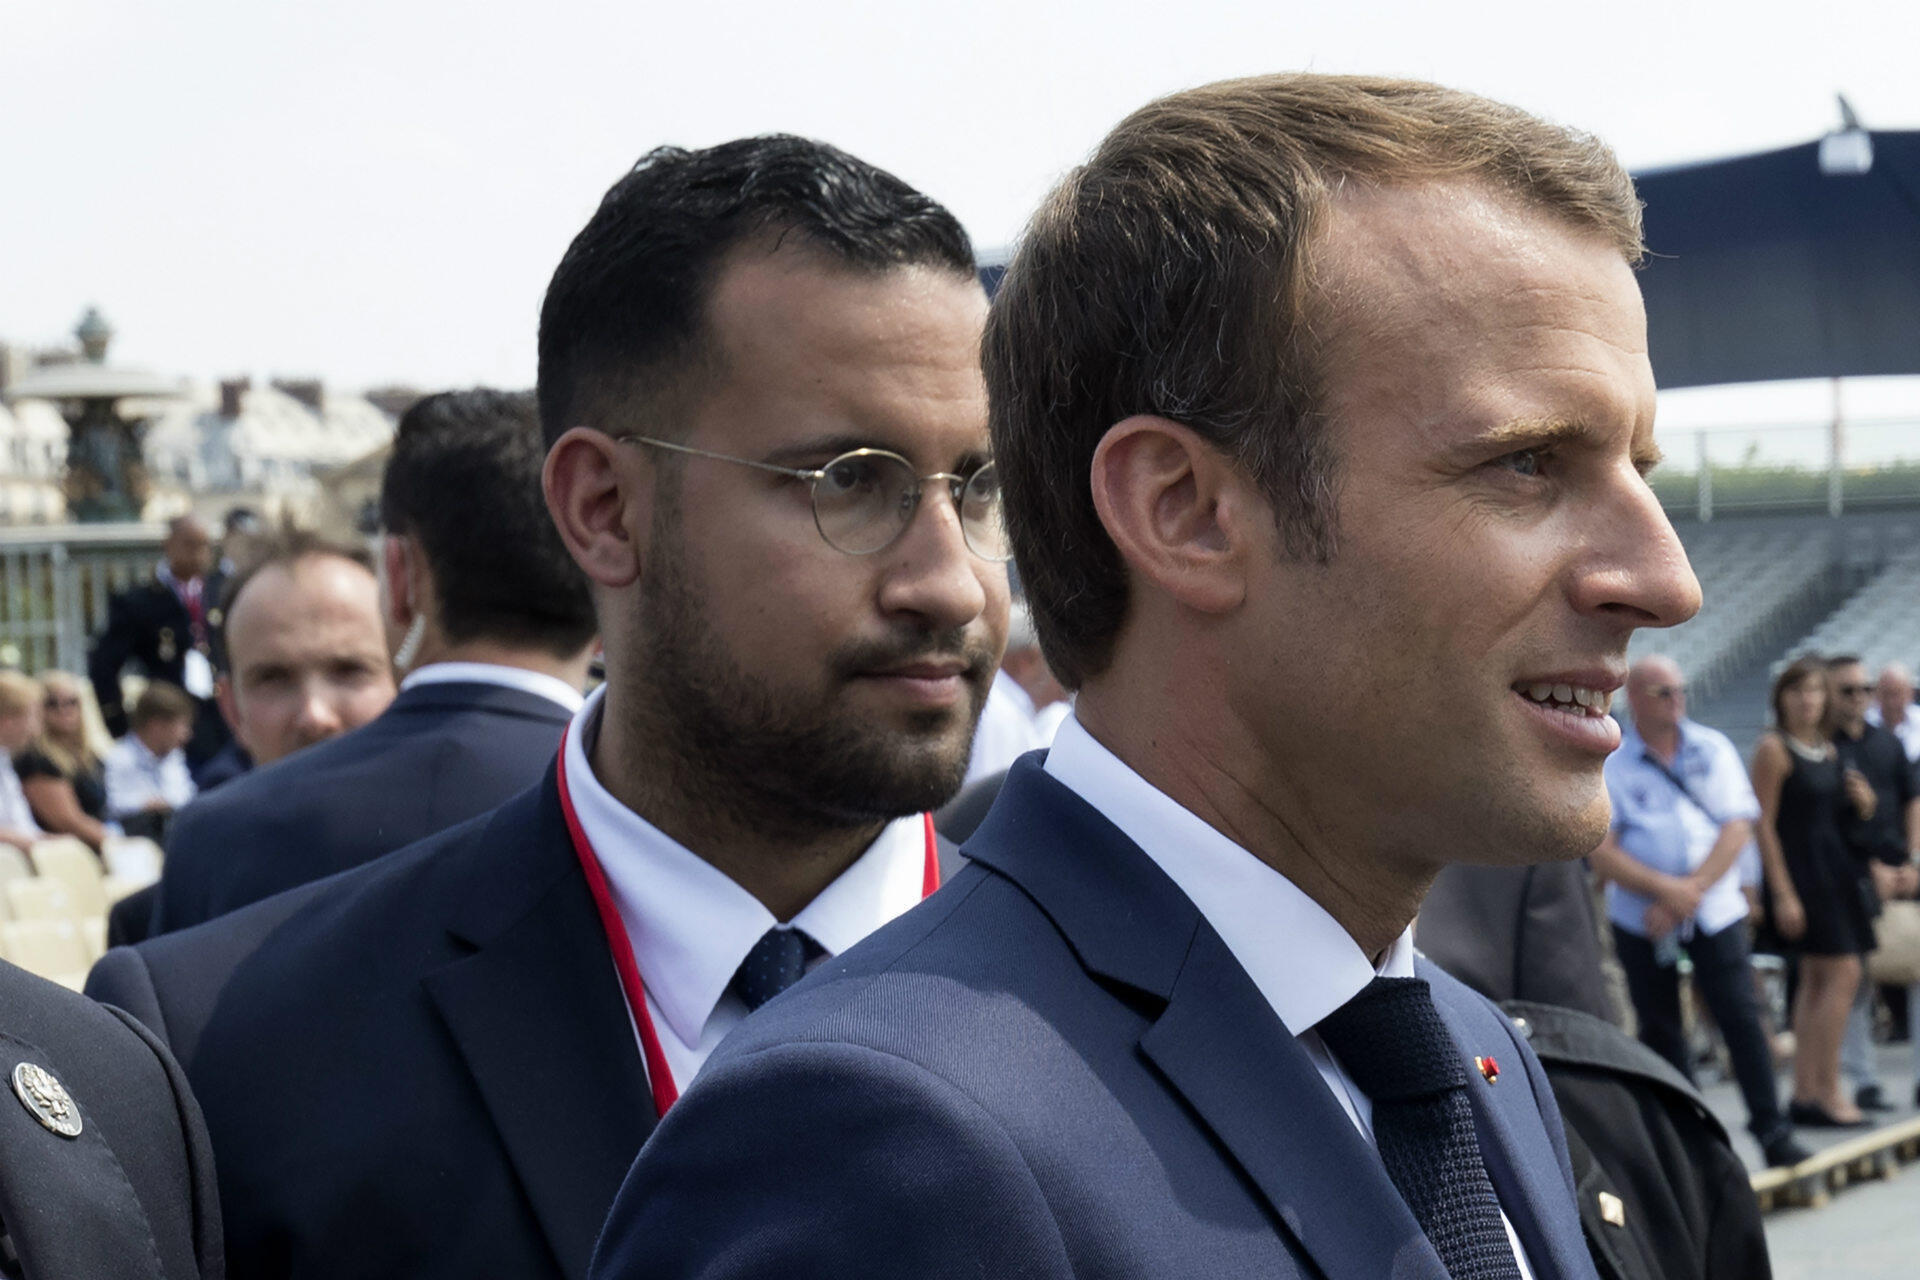 """French daily Le Monde broke the story on July 18 that Emmanuel Macron's deputy chief of staff and top security officer, Alexandre Benalla, had beaten two protesters in Paris at a May 1 rally while shadowing riot police. Dubbed the """"Benalla Affair"""", the scandal brought the administration to a standstill with parliamentary enquiries, a hearing with the interior minister and round-the-clock coverage. Macron was criticised for responding too late and not firing Benalla when the scandal broke."""